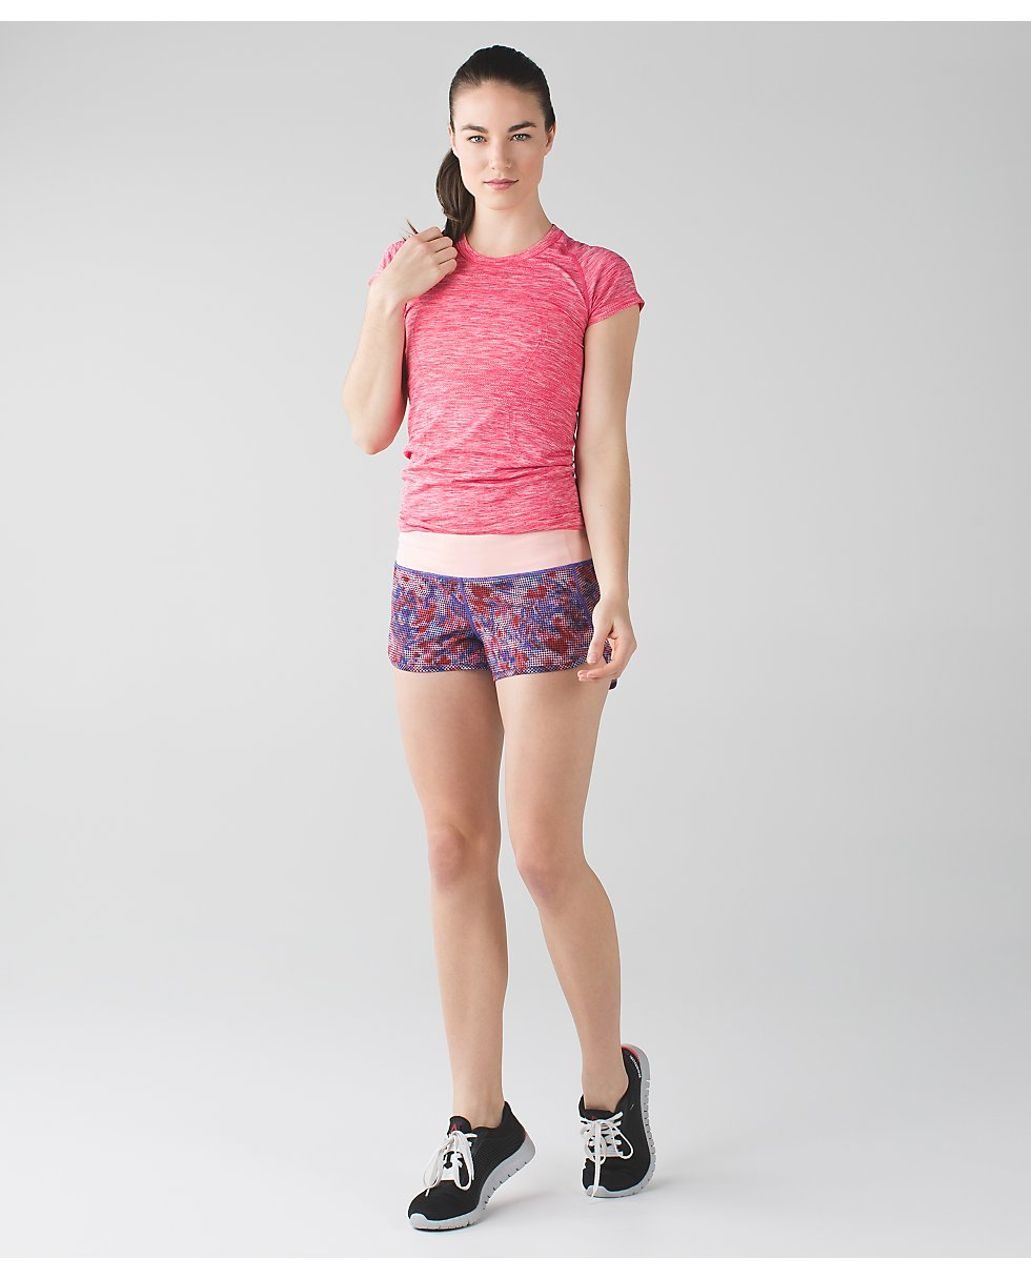 Lululemon Speed Short - Checker Blooms Multi / Minty Pink